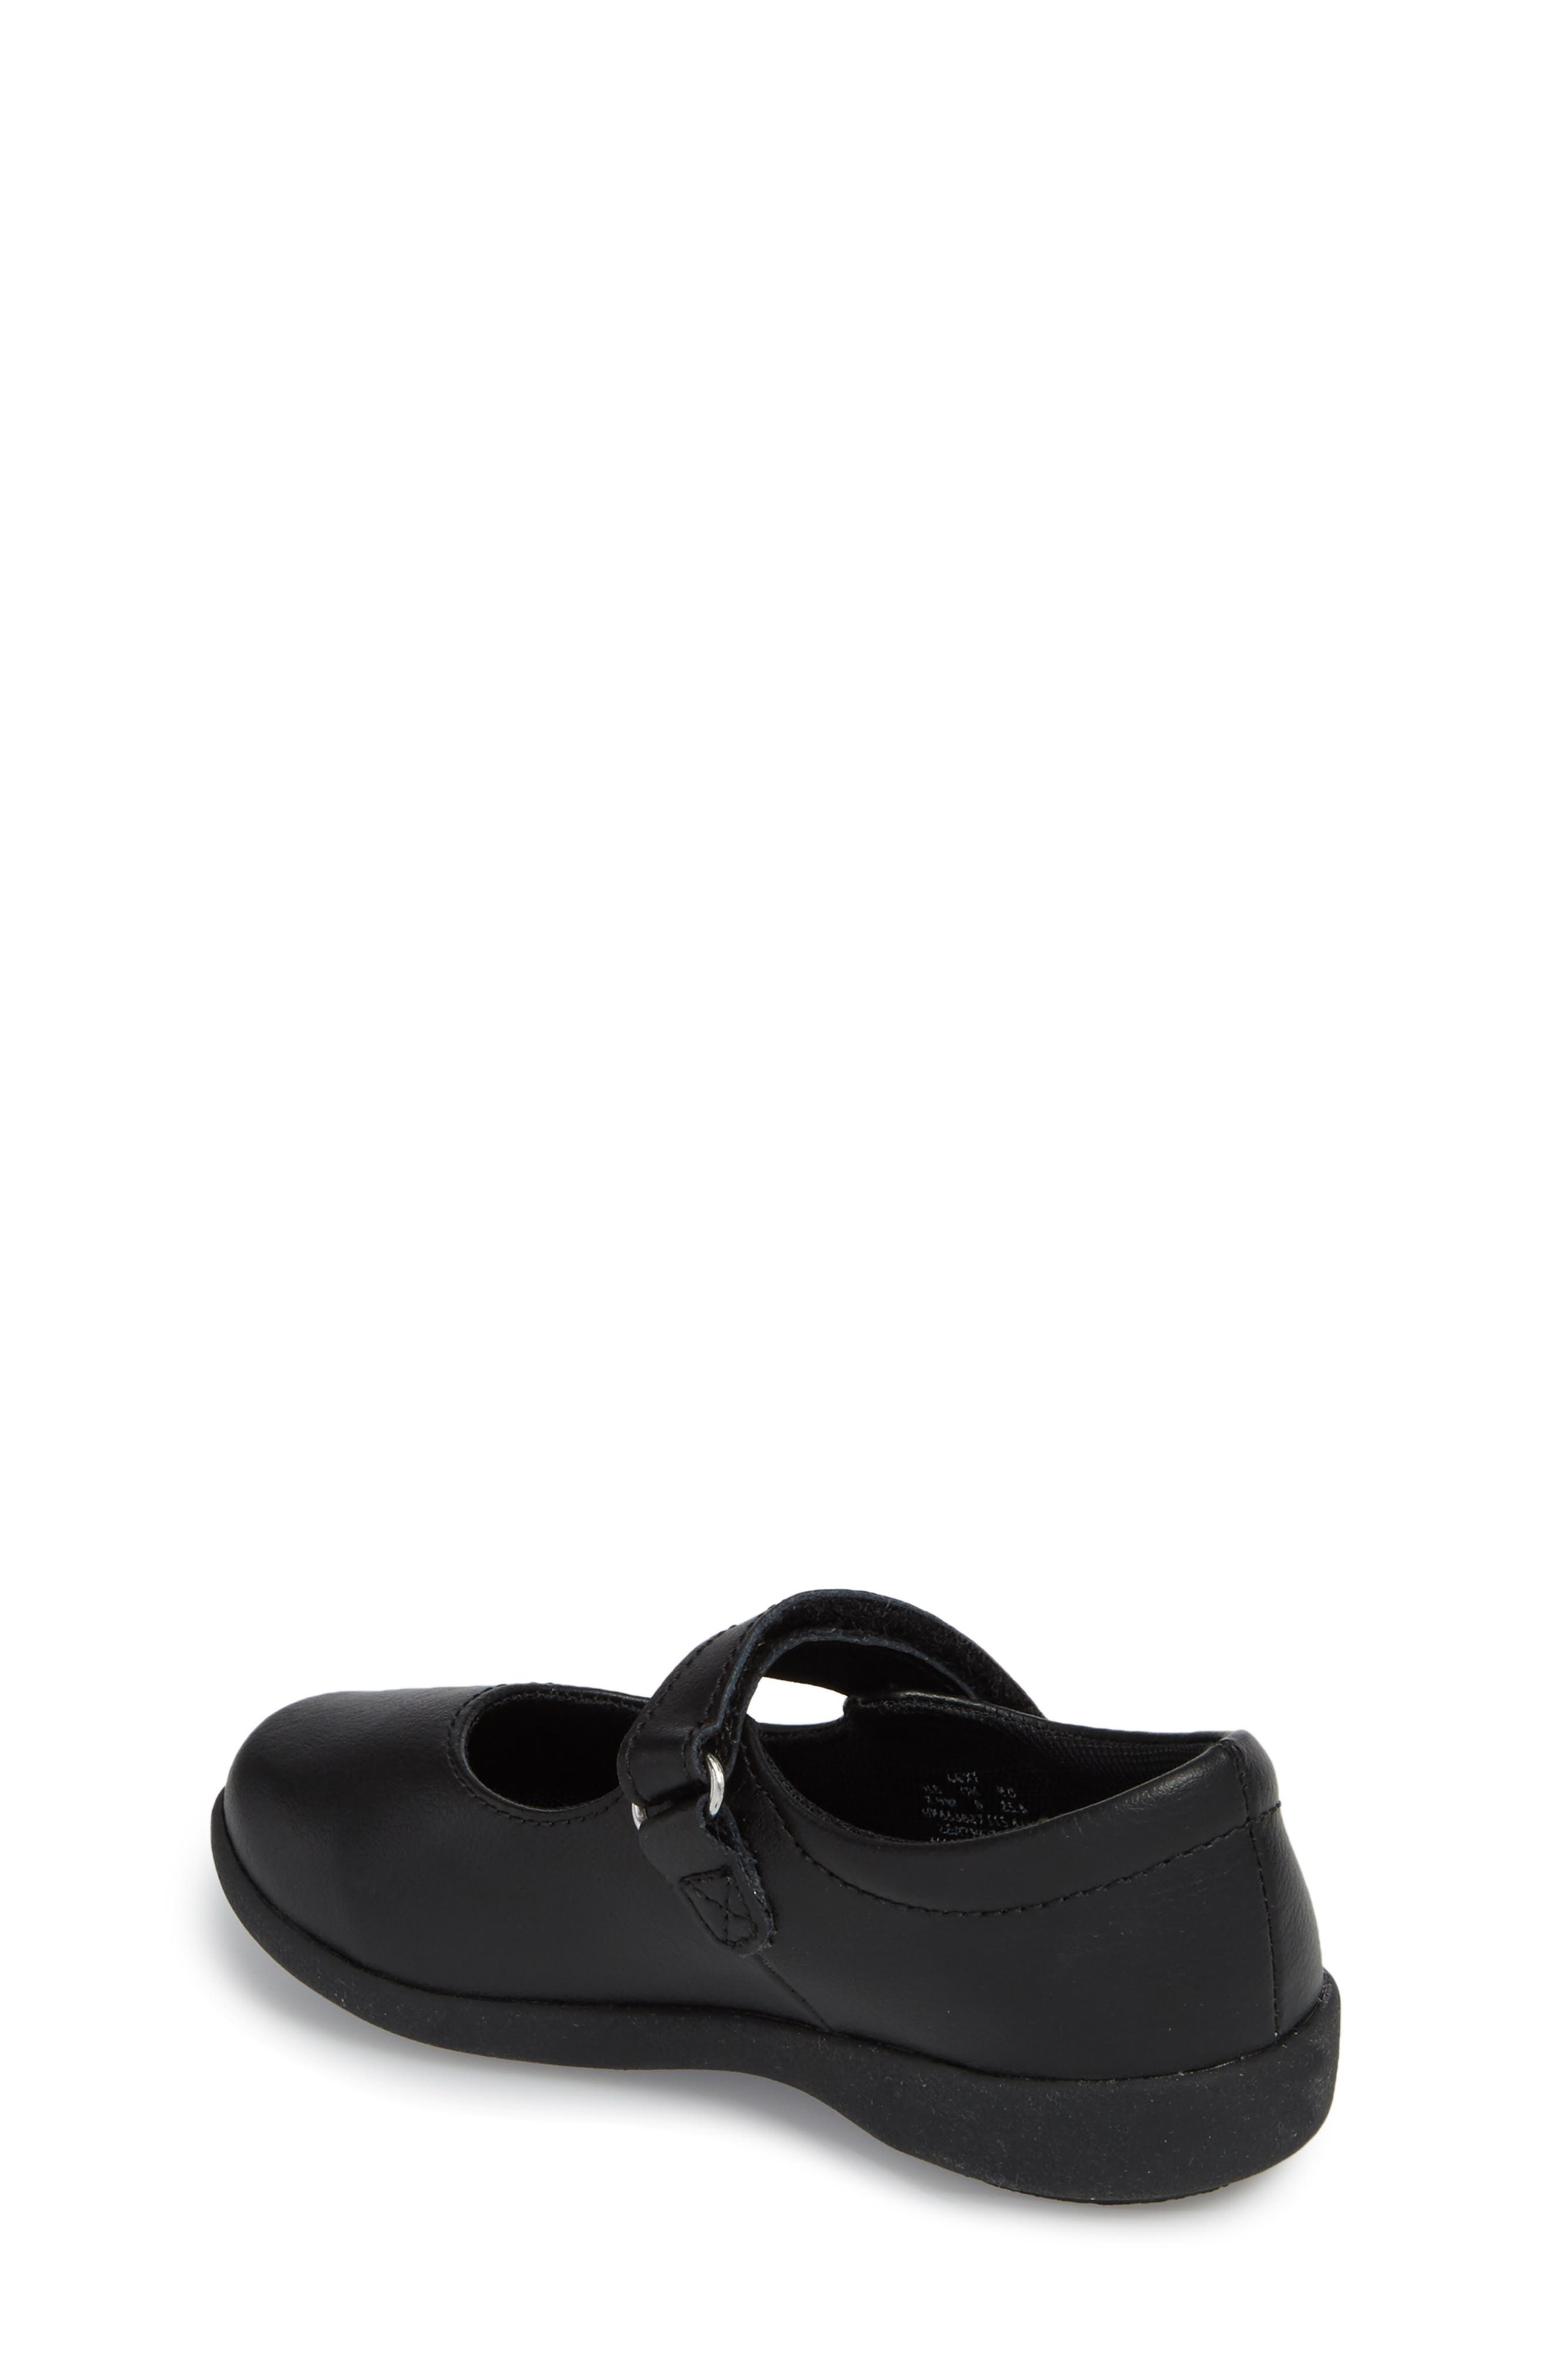 HUSH PUPPIES<SUP>®</SUP>, Lexi Mary Jane Flat, Alternate thumbnail 2, color, BLACK LEATHER